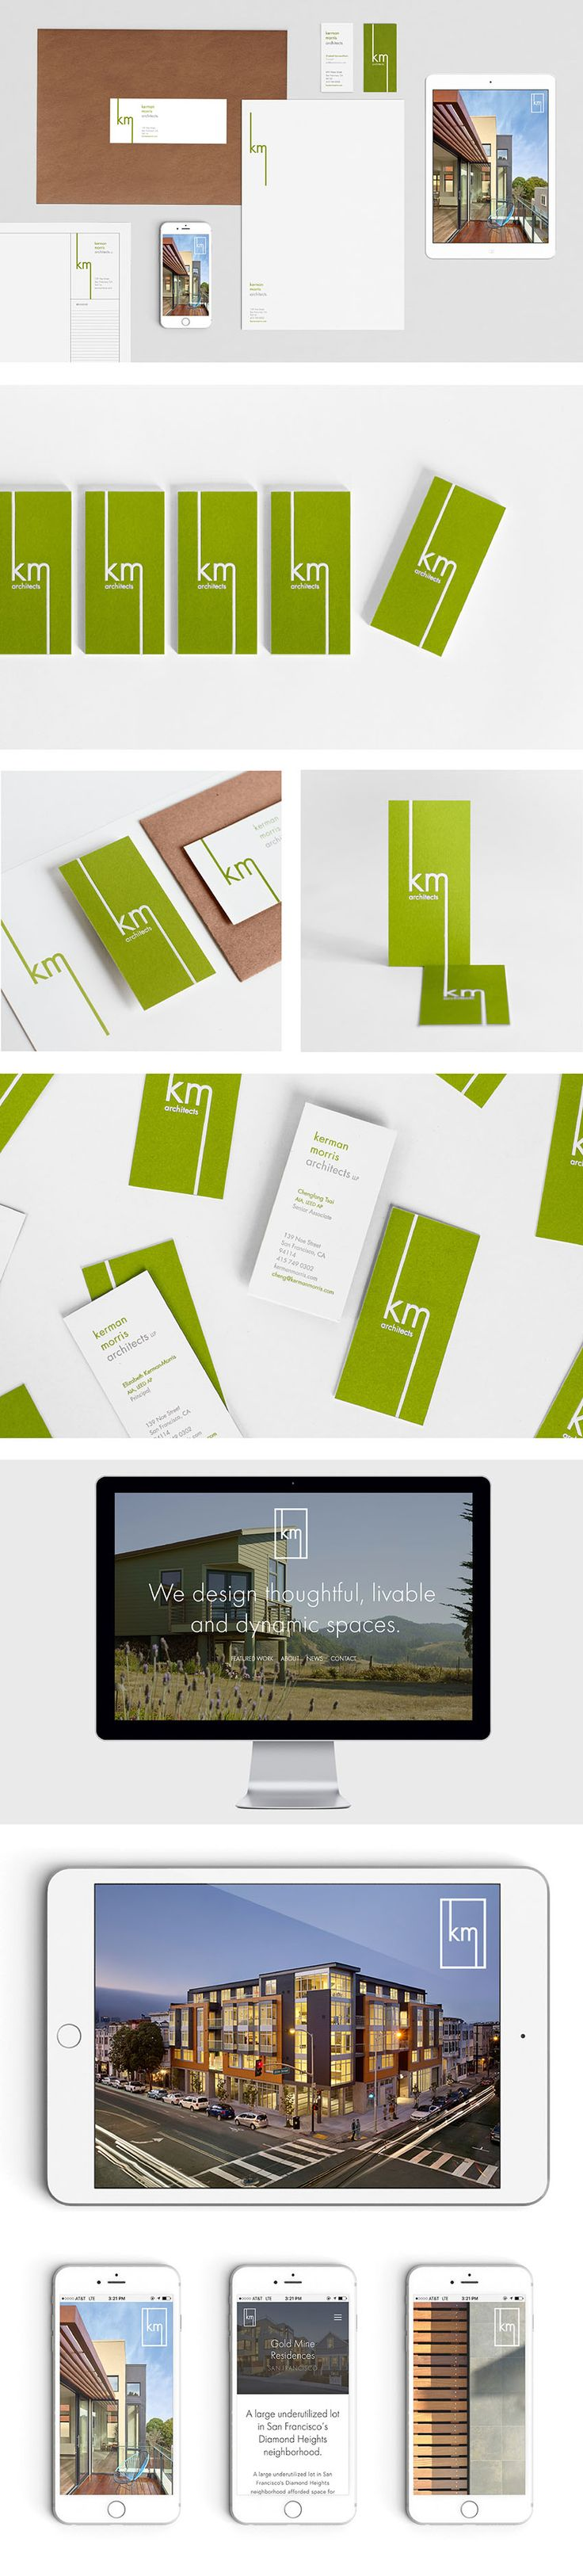 Cassandra cappello graphic design toronto - Full Branding Package For Kerman Morris Architects Featuring A Letterpressed Business Card Designed By Adrienne Eberhardt